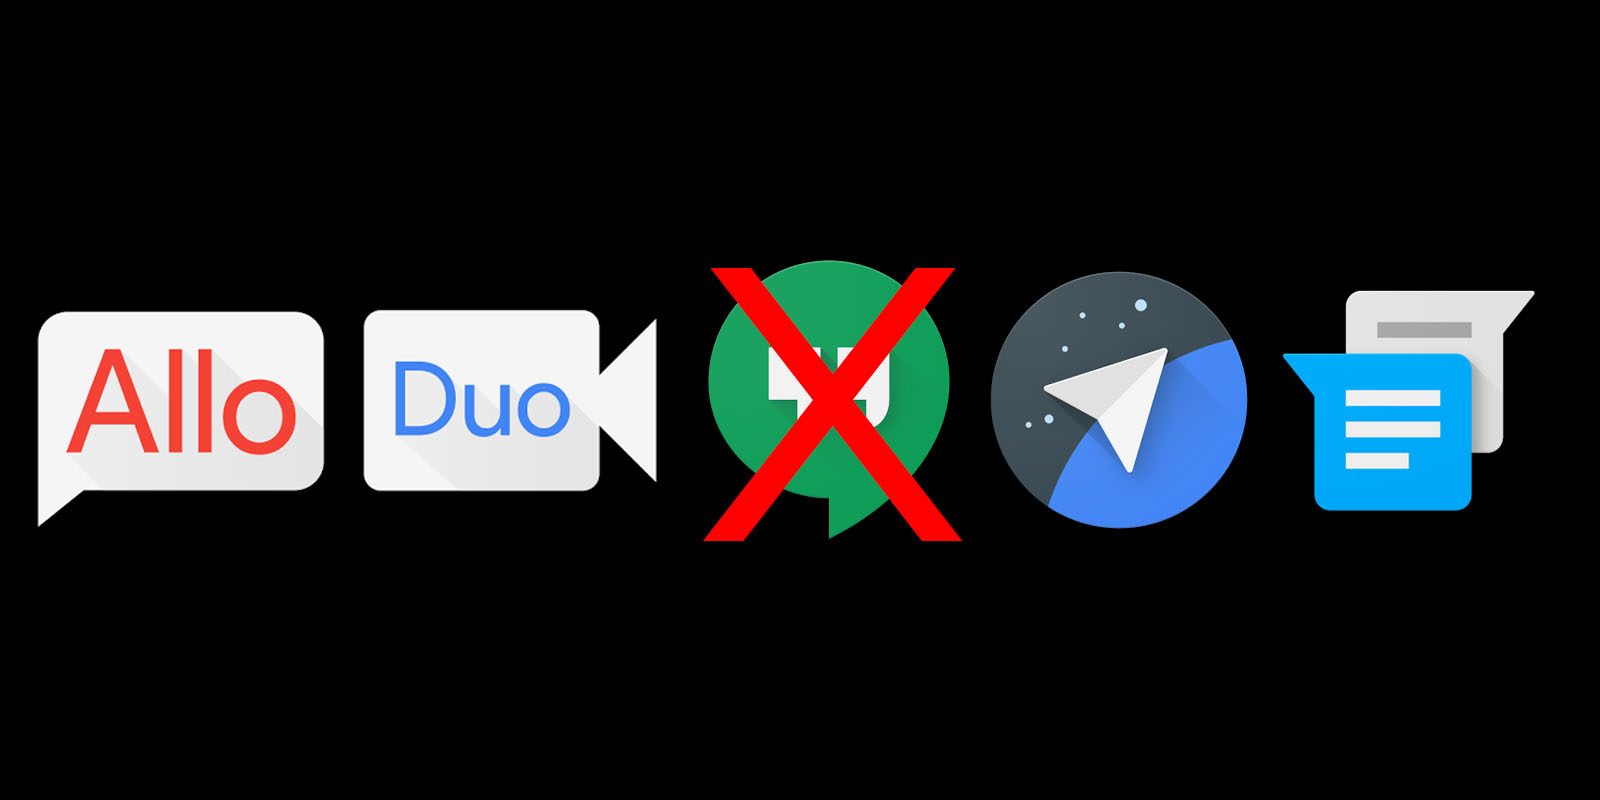 Google doesn't need 5 chat apps, and Hangouts should die first